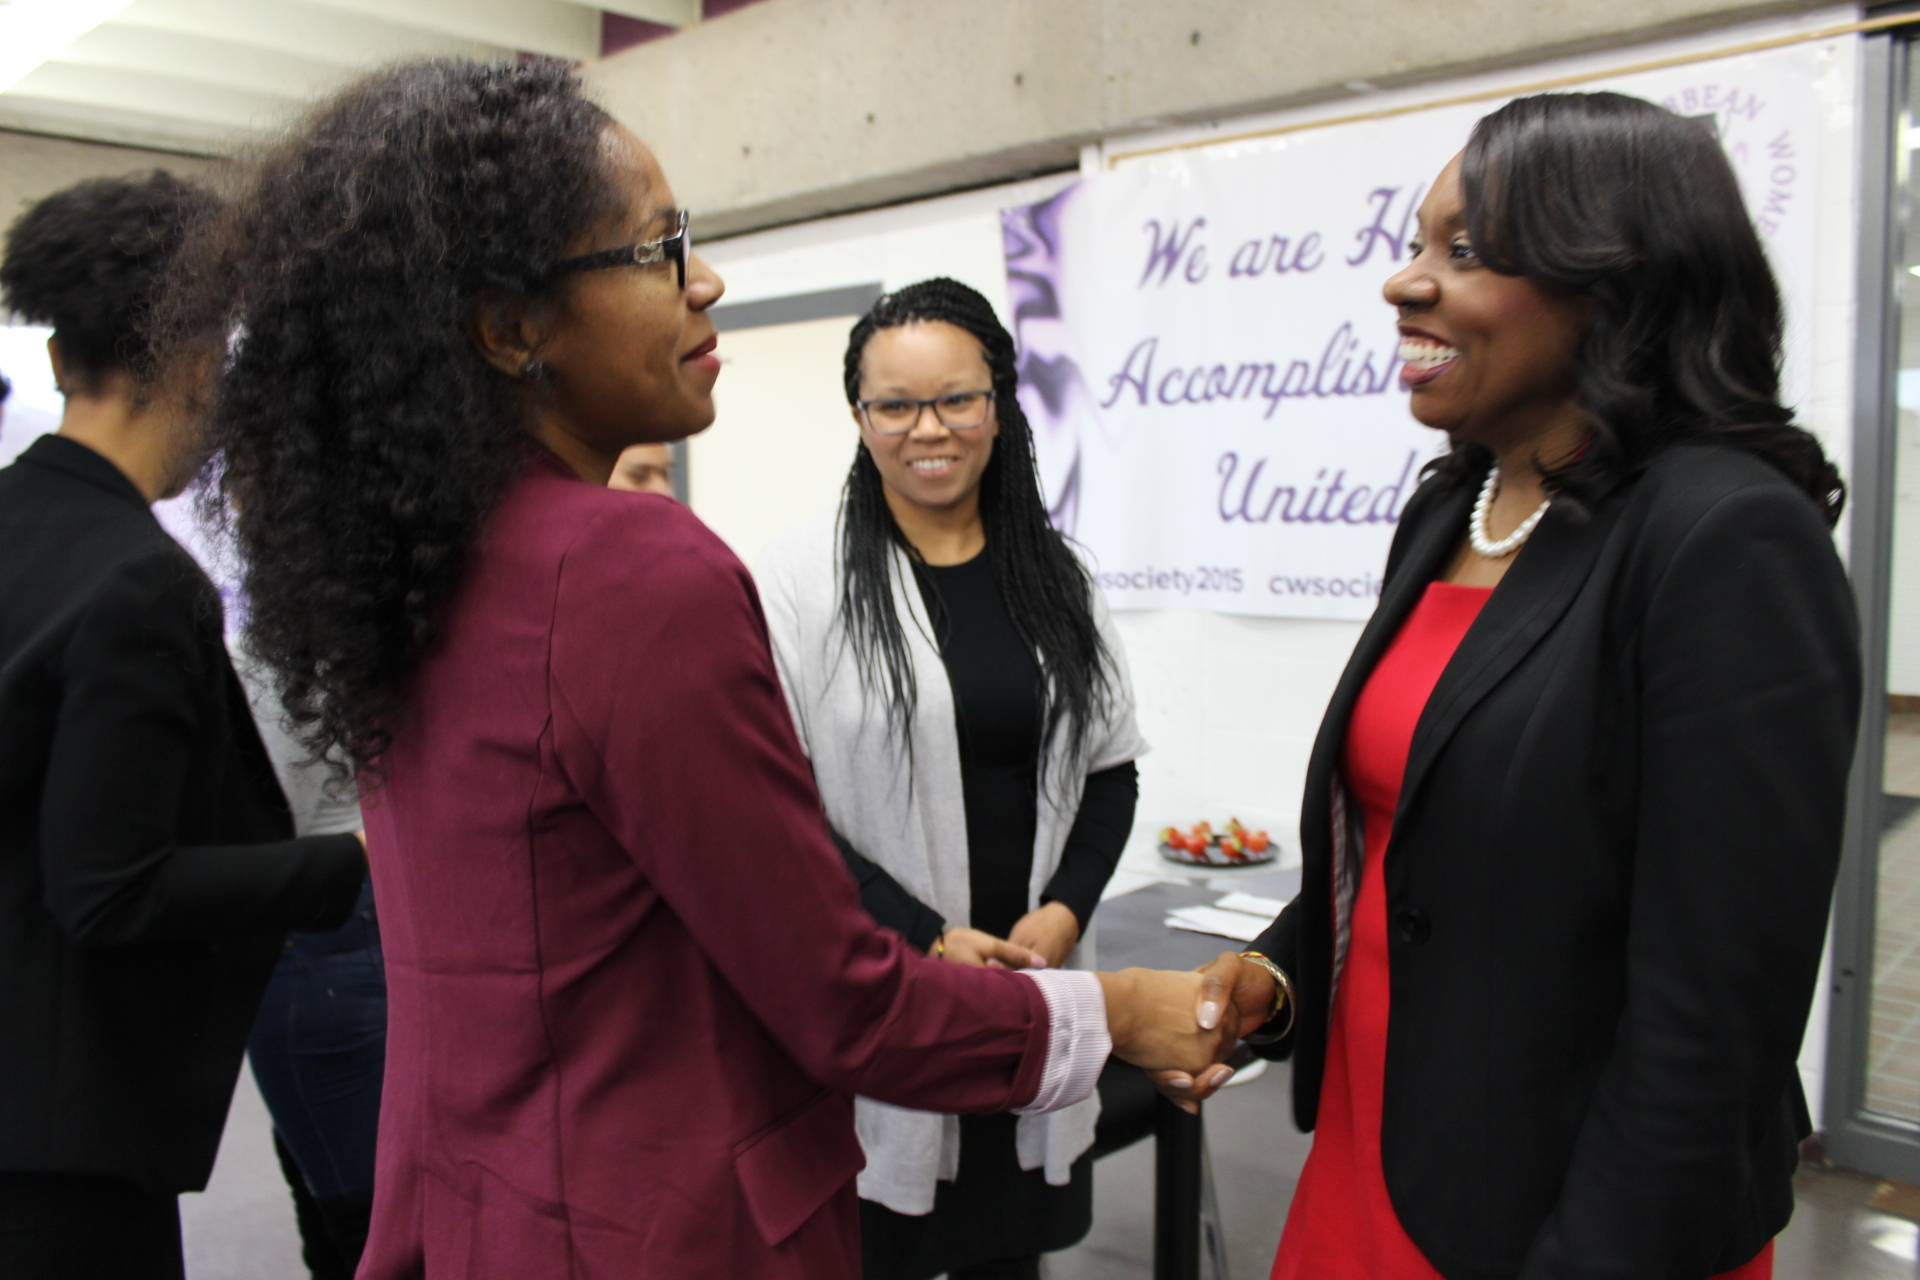 Minister of Education, Mitzie Hunter, and CWS&C5 President, Camille Kerr at the public launching of C5